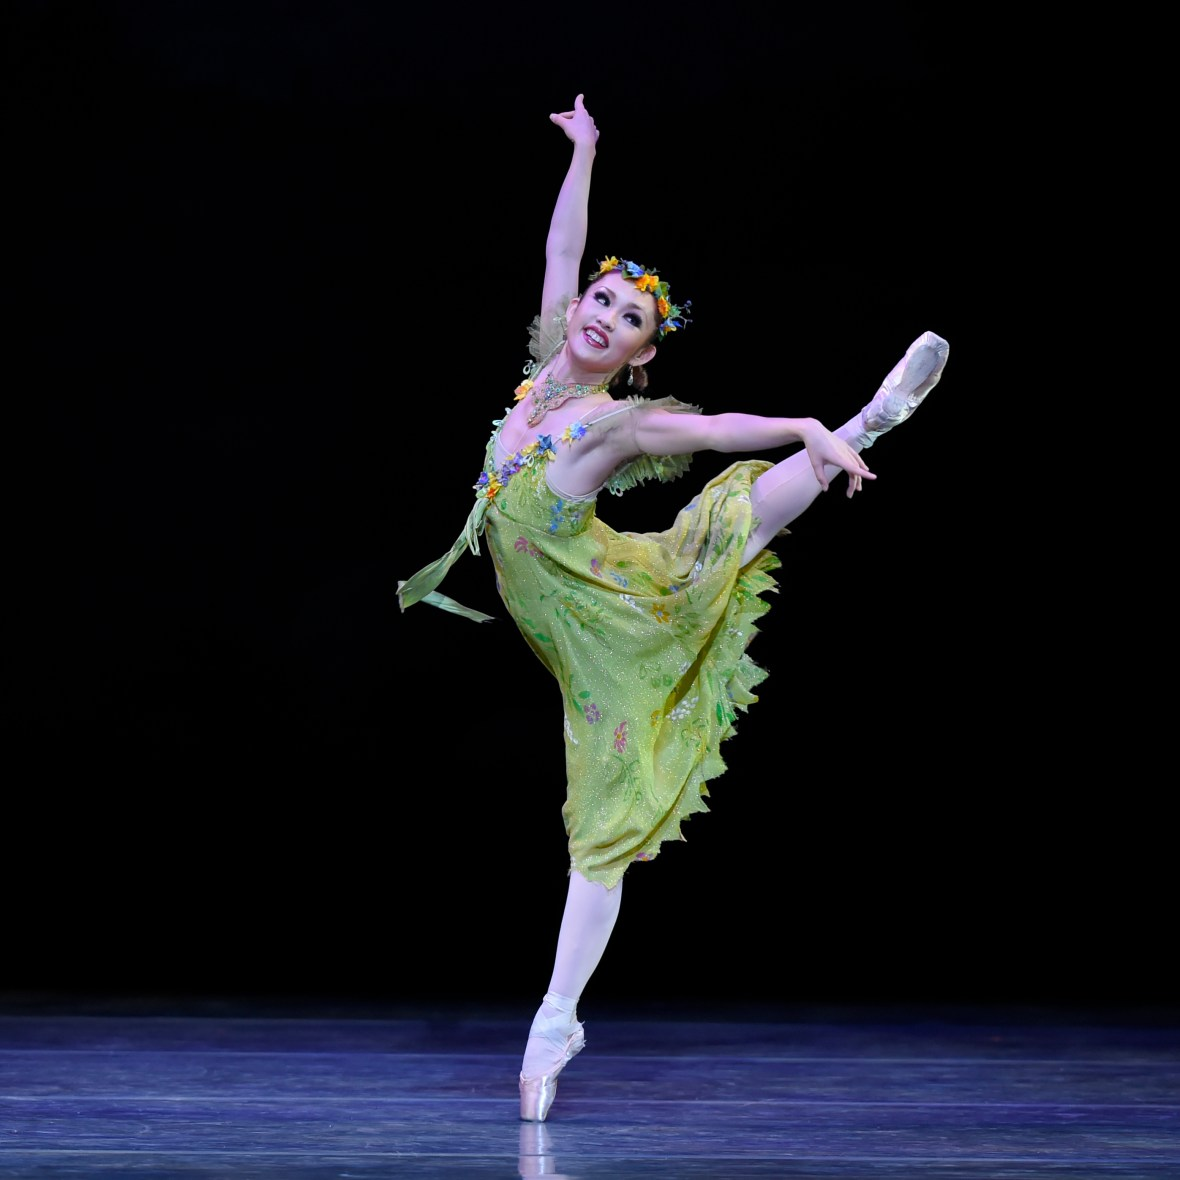 """Ansa Deguchi (as the Spring Fairy) in the company premiere of Ben Stevenson's """"Cinderella,"""" running February 28 - March 7, 2015, at Portland's Keller Auditorium. Photo by Yi Yin."""